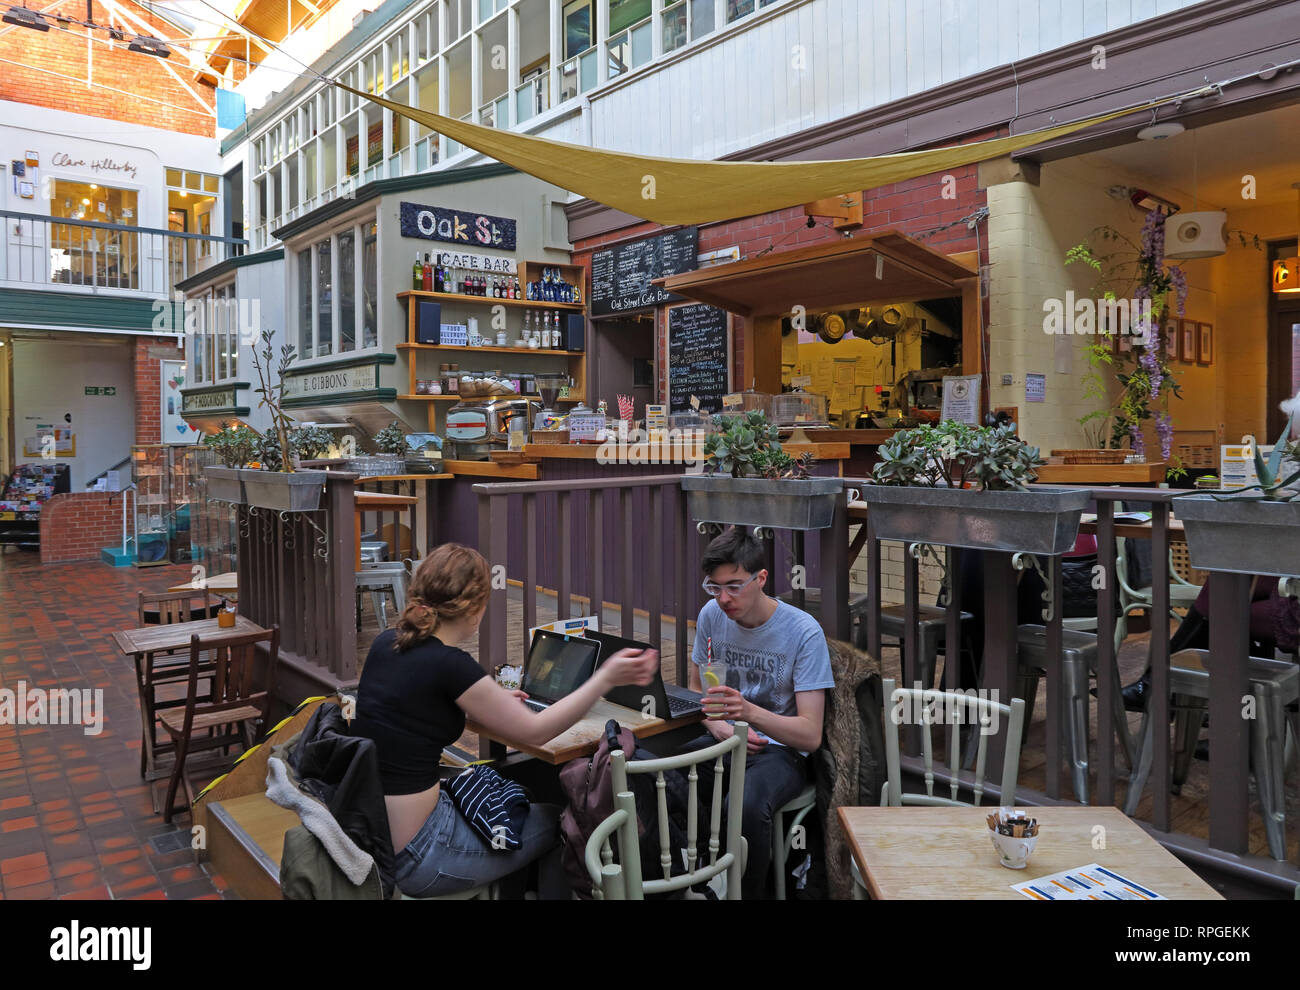 Manchester Craft Village, Oak Street Cafe, Vegetarian and other food in a relaxed environment, England, UK , M4 5JD Stock Photo